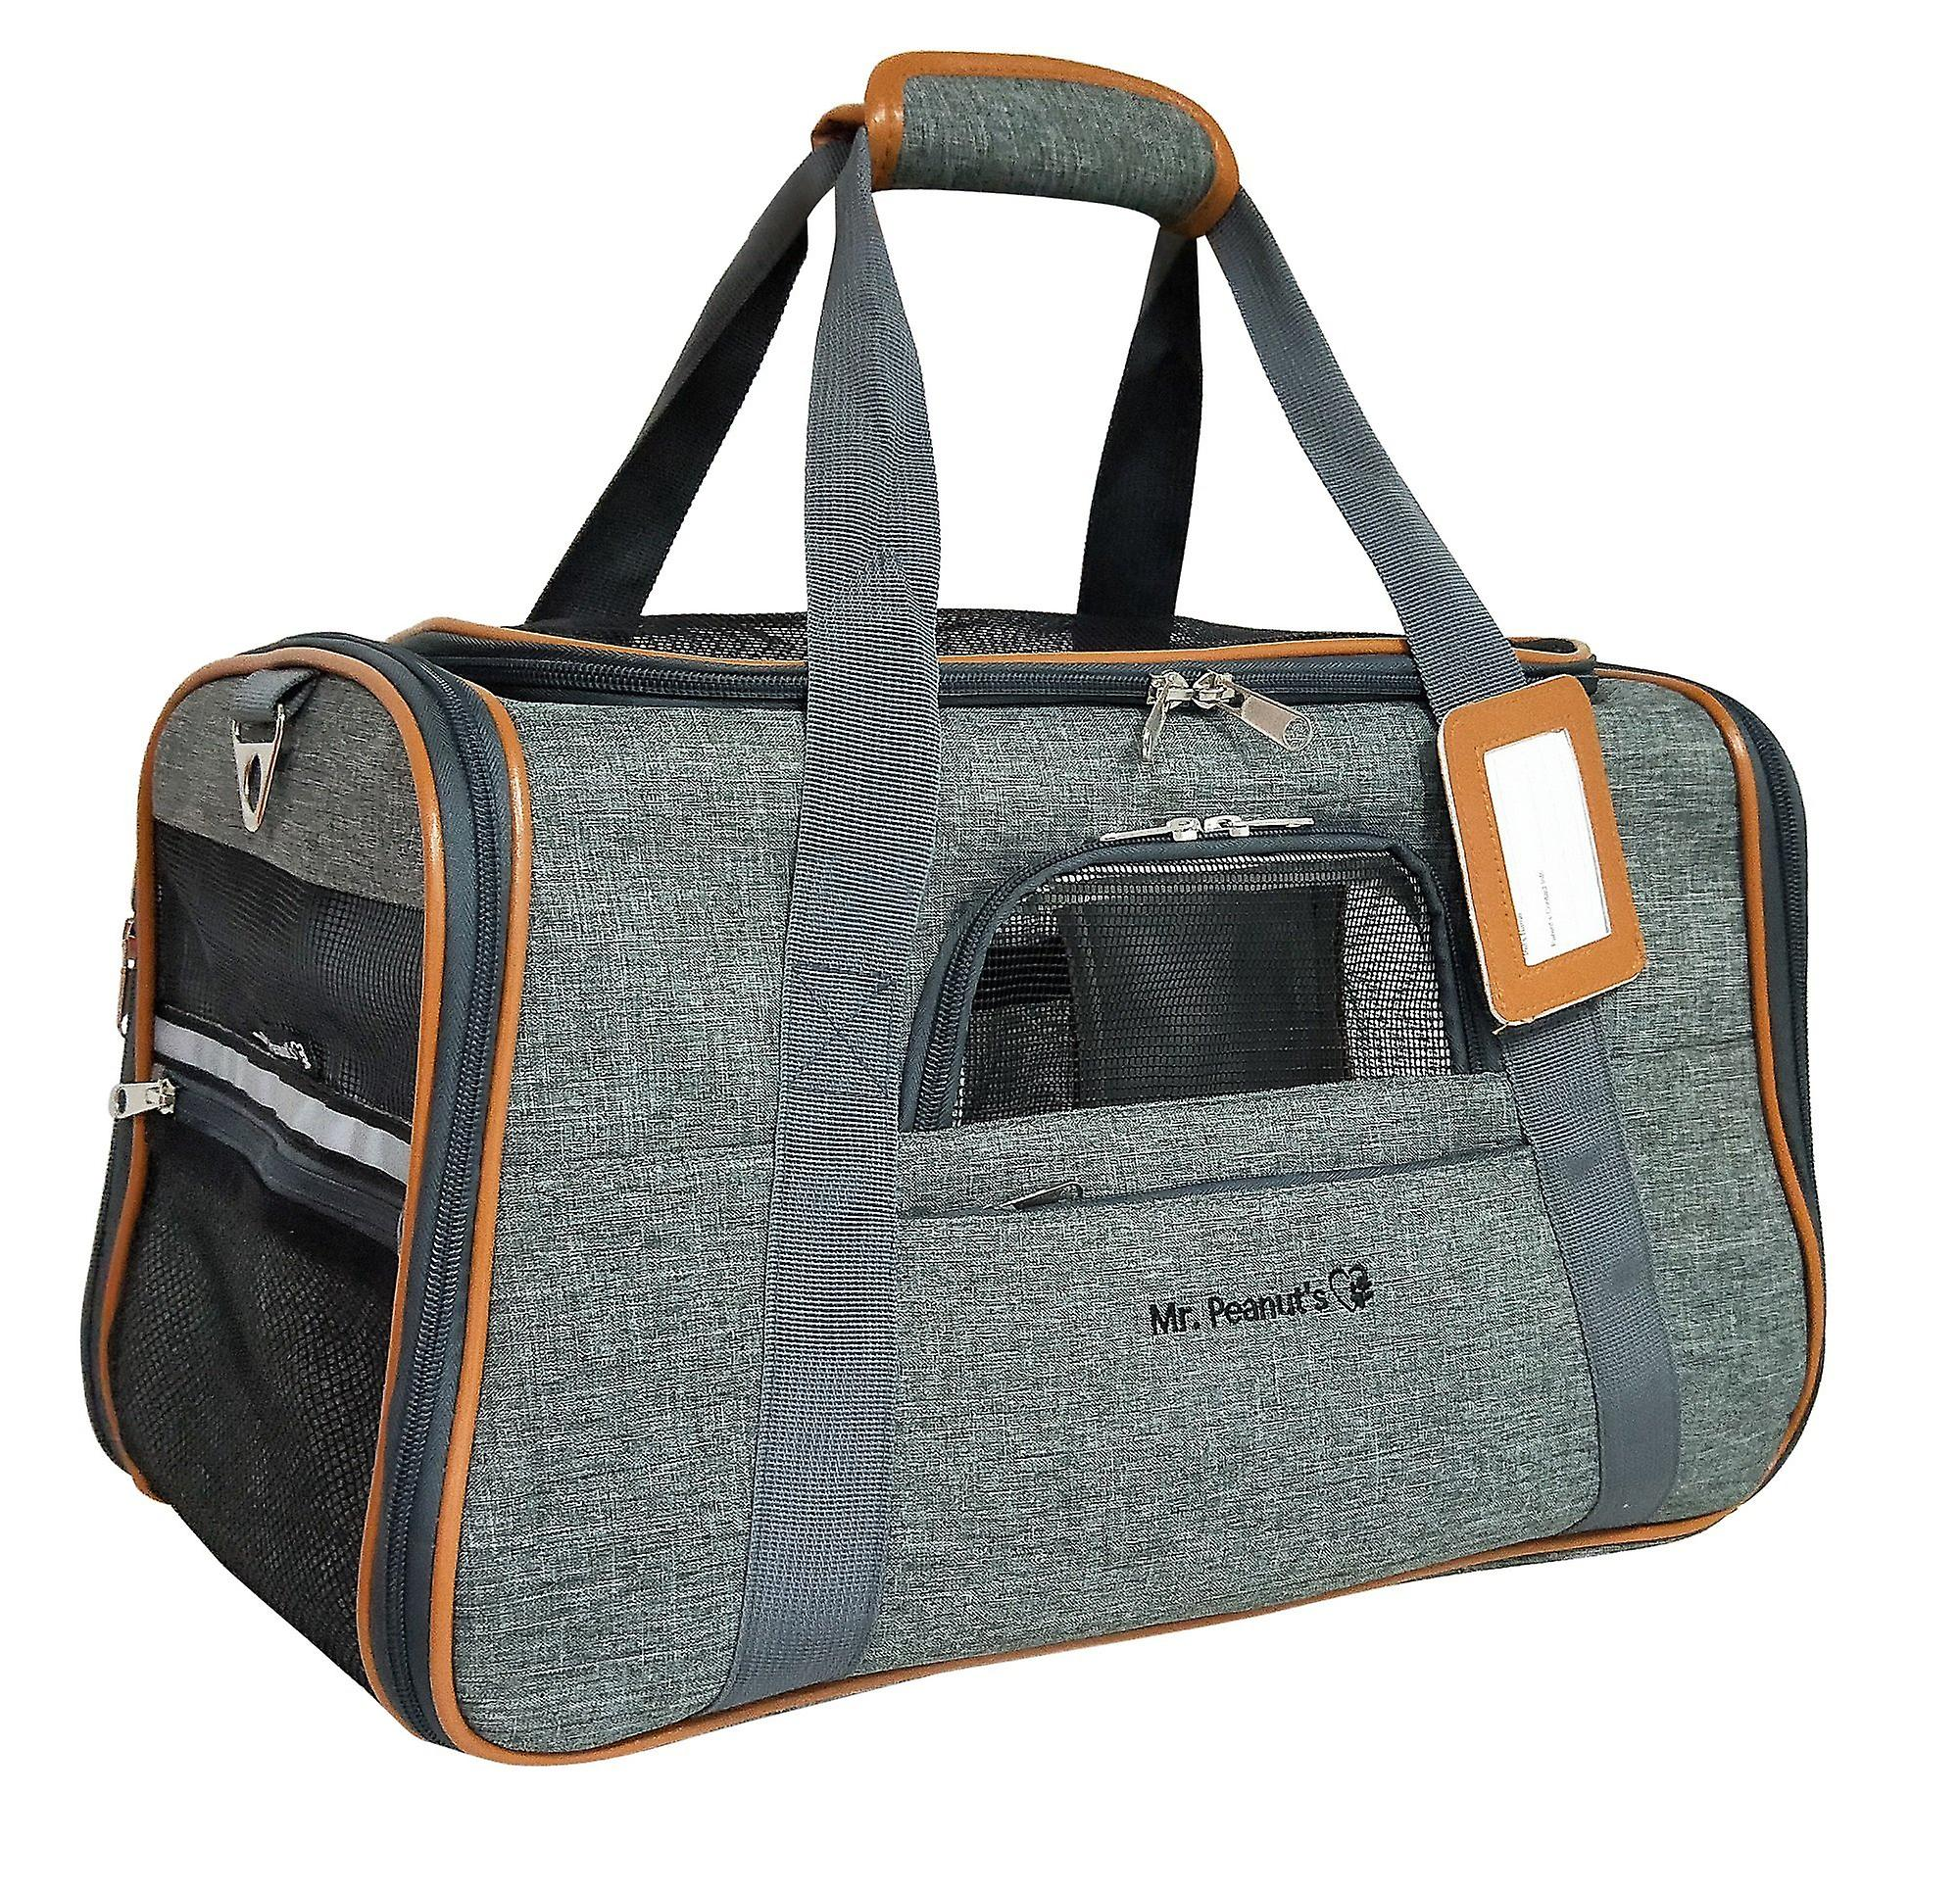 Platinum series airline approved soft sided tote